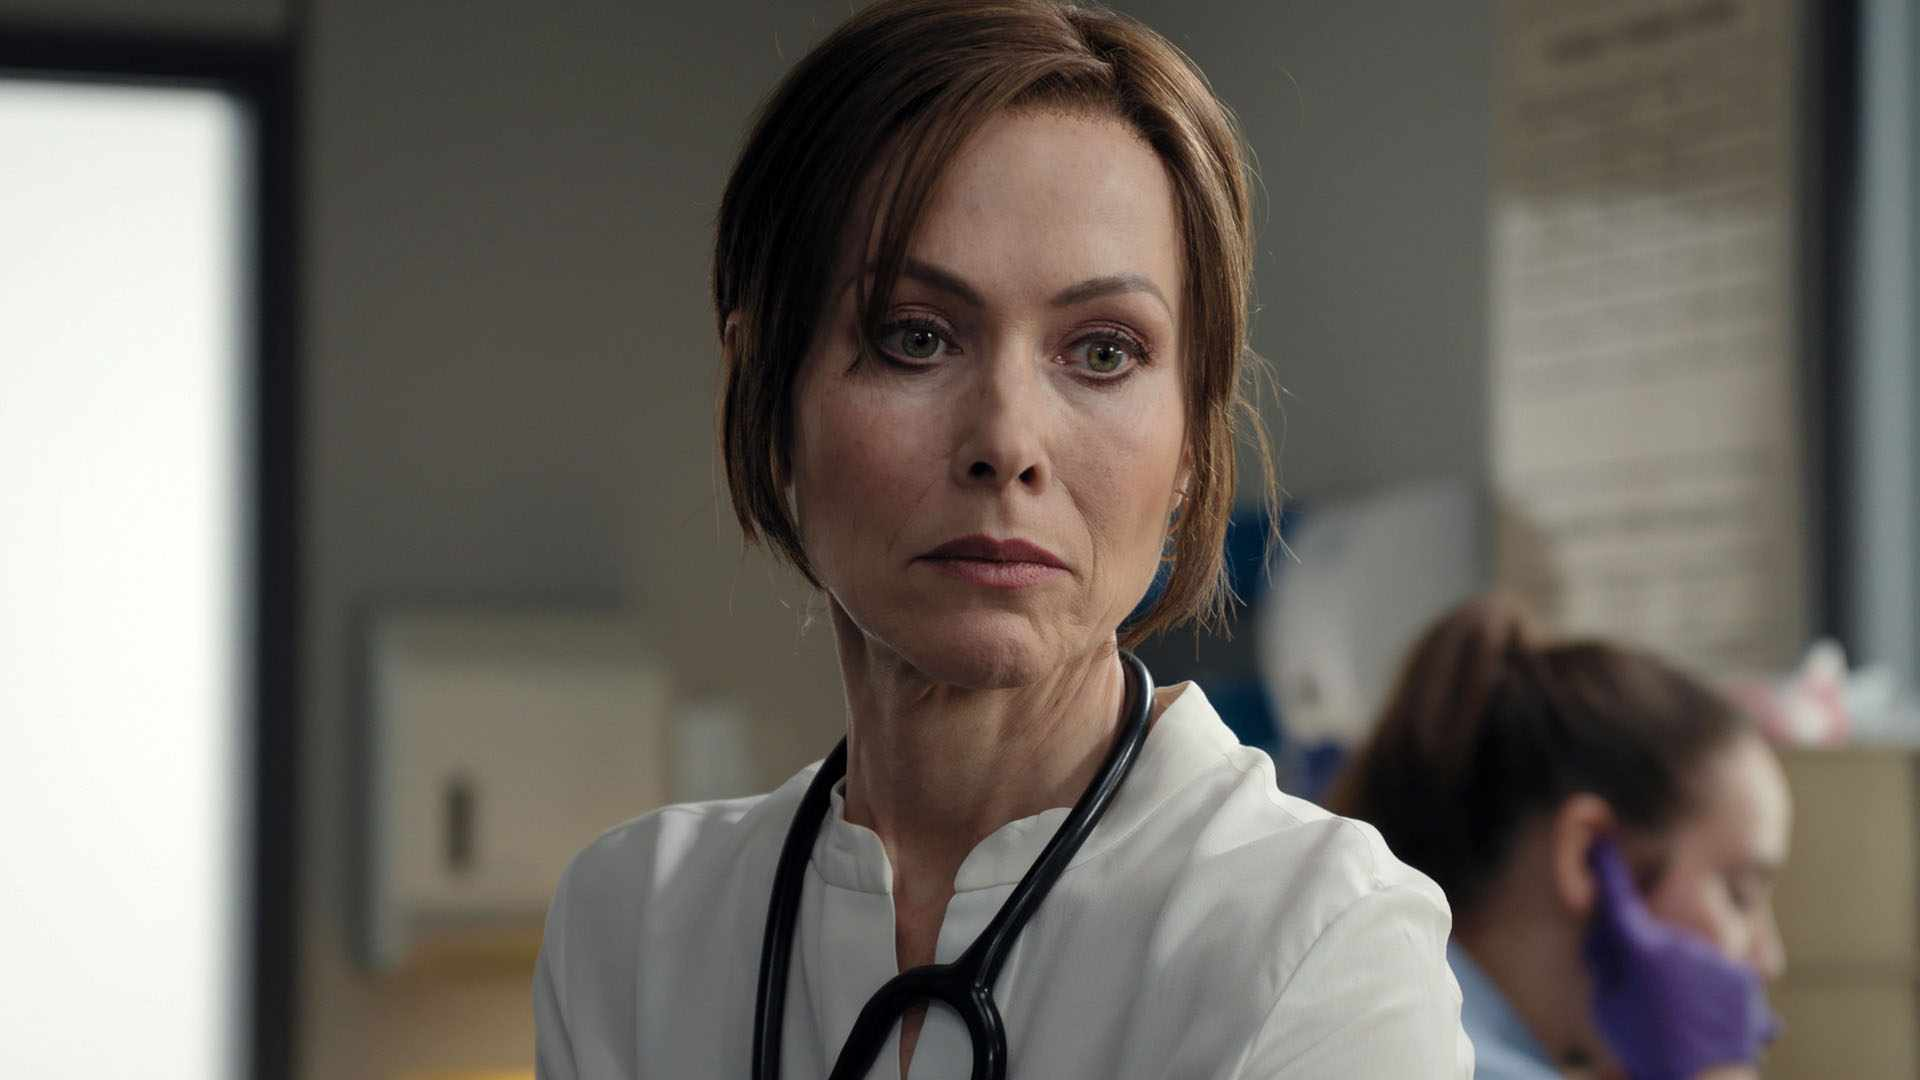 Casualty, Amanda Mealing as Connie